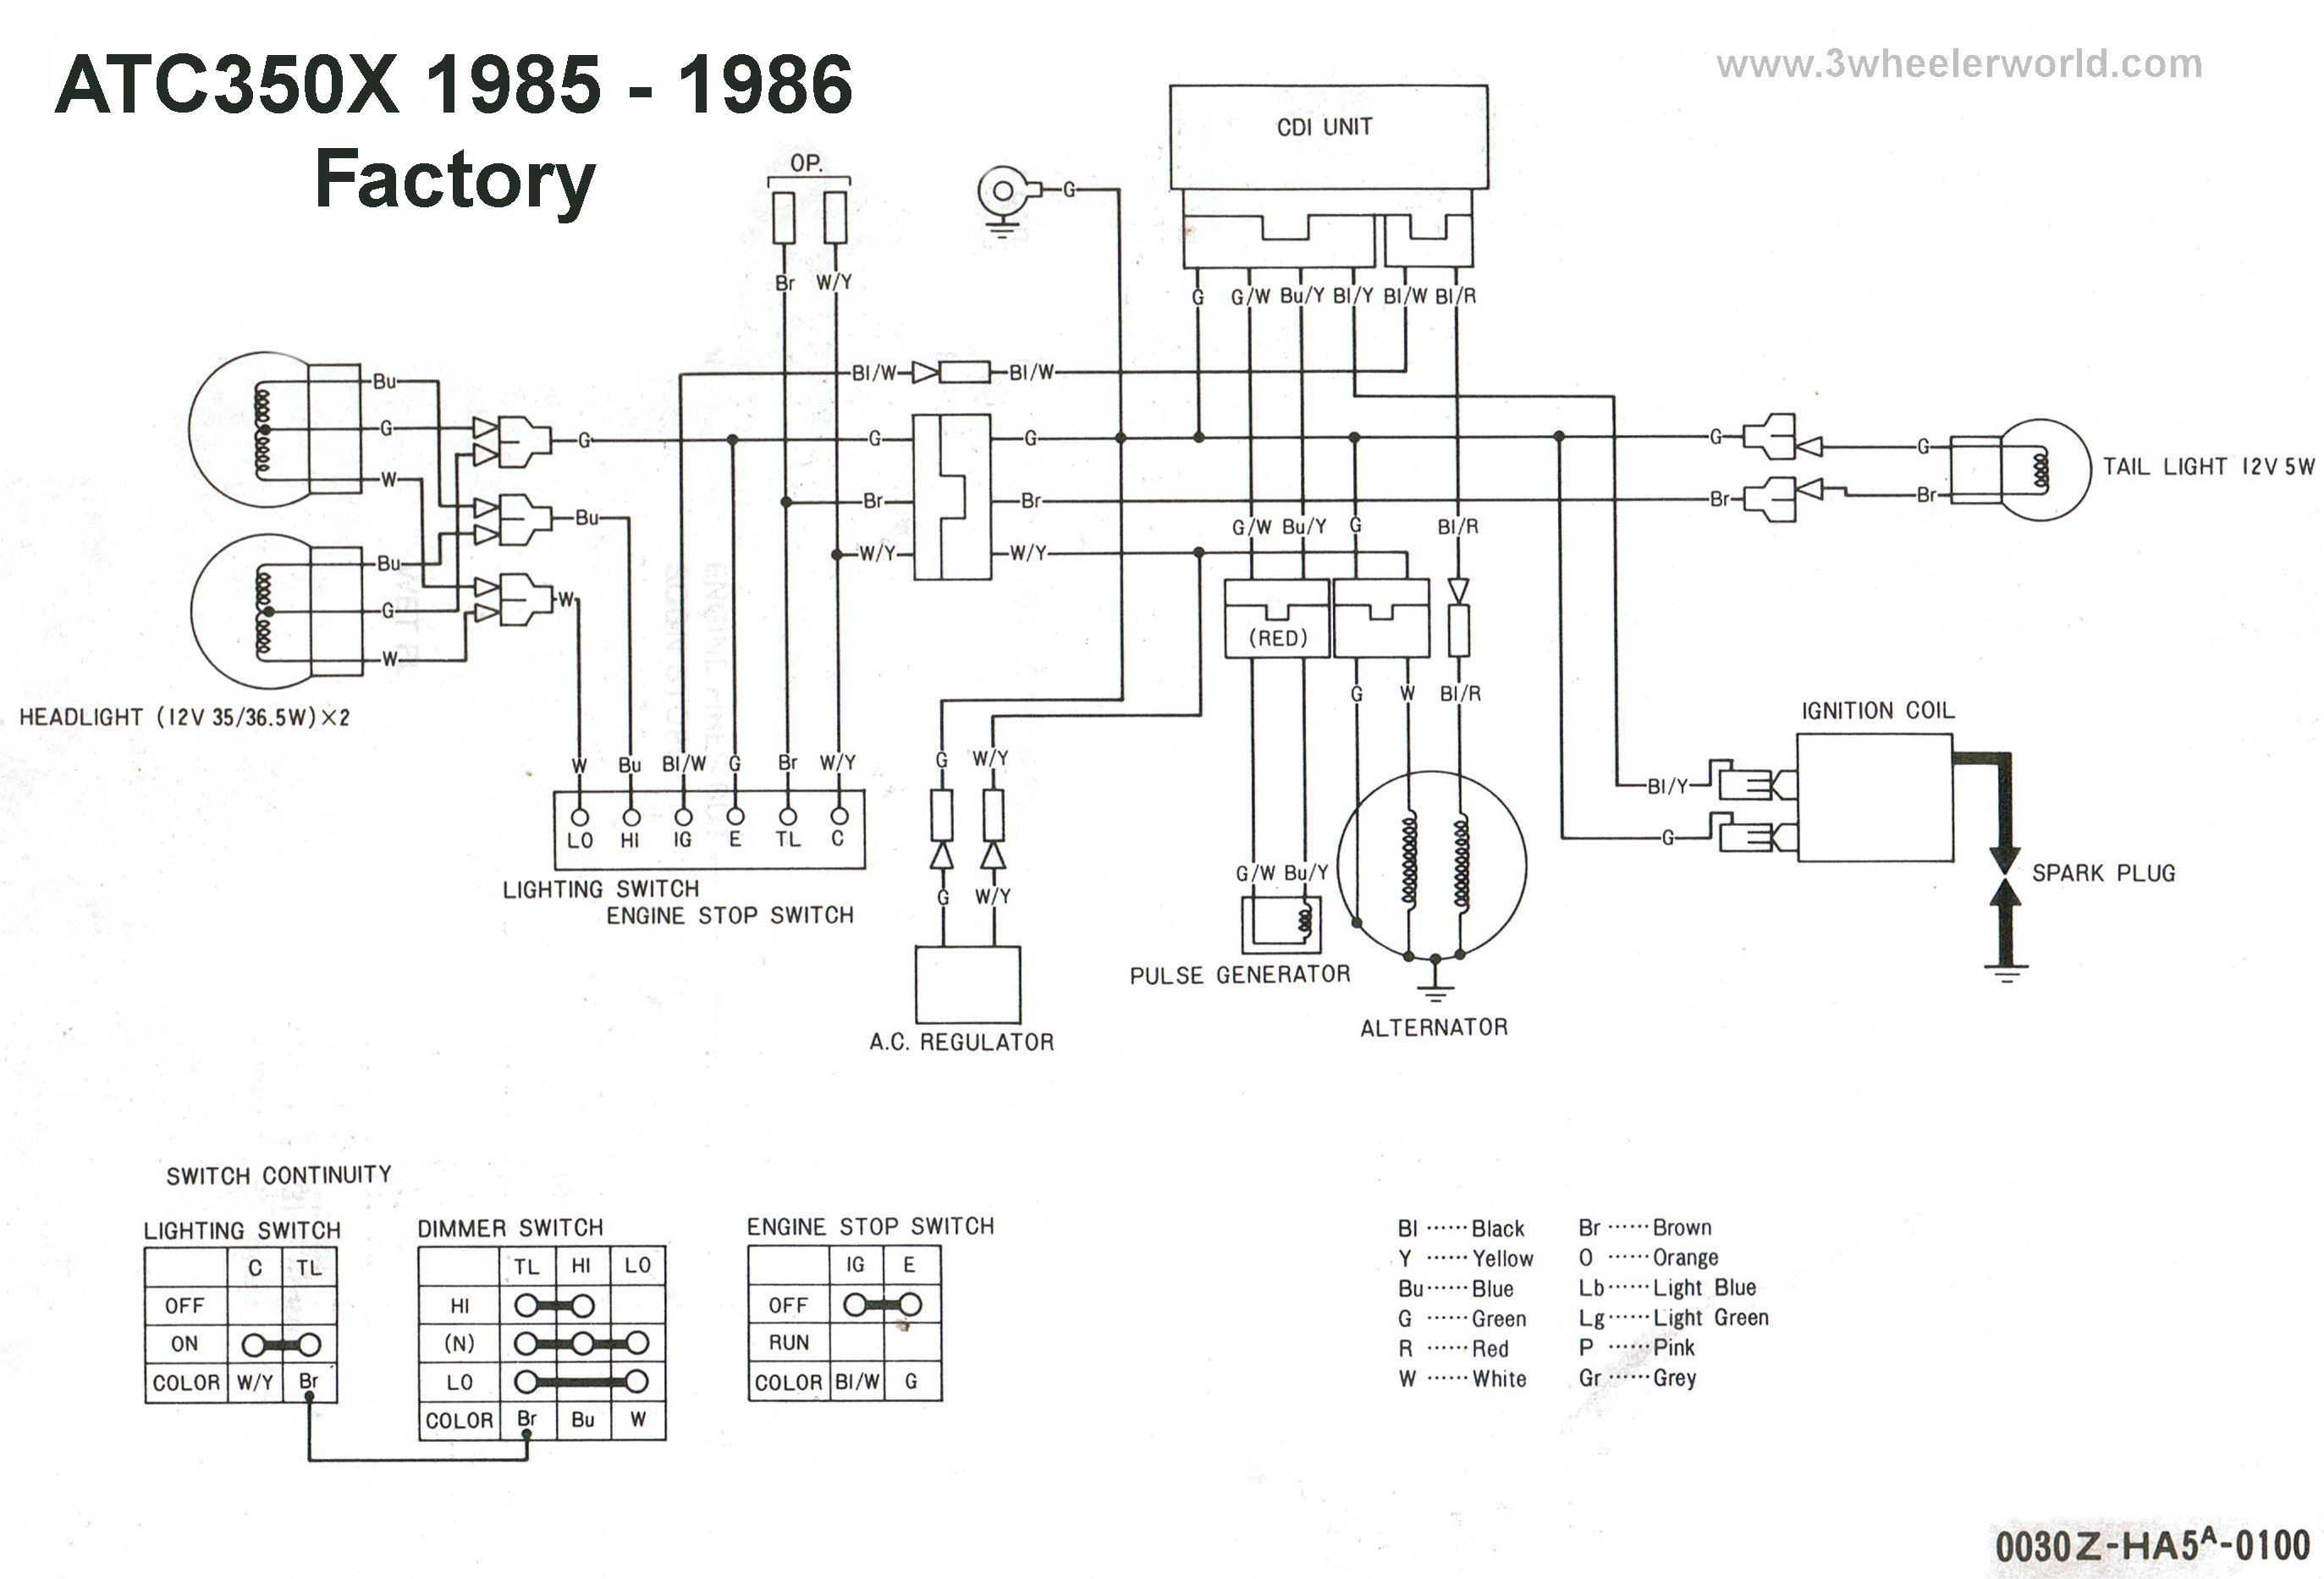 honda 300 4x4 wiring diagram honda fat cat wiring diagram honda wiring diagrams